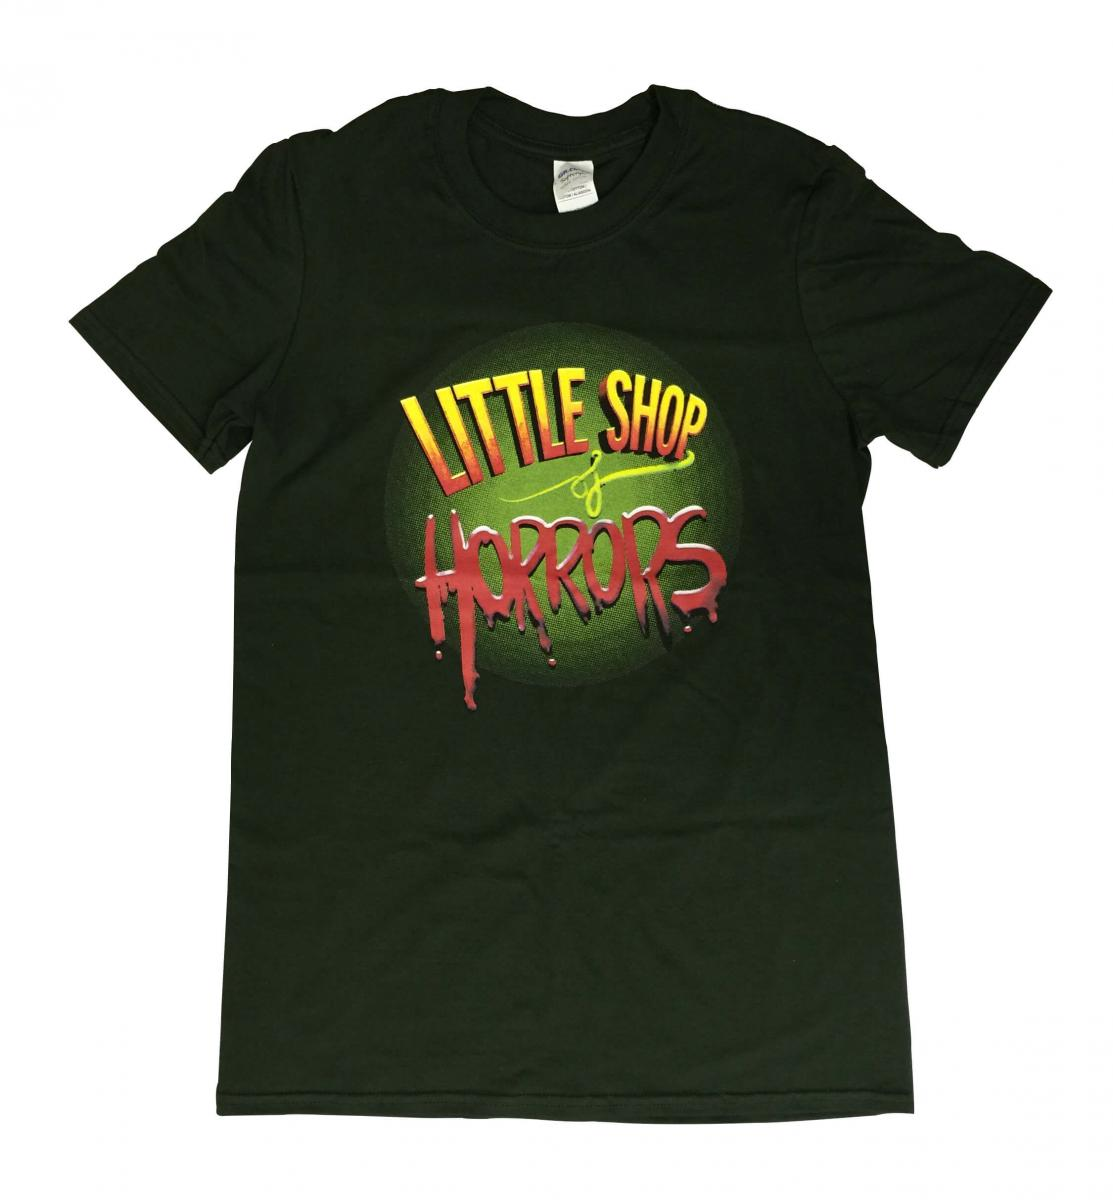 Little Shop of Horrors Green T Shirt - Small